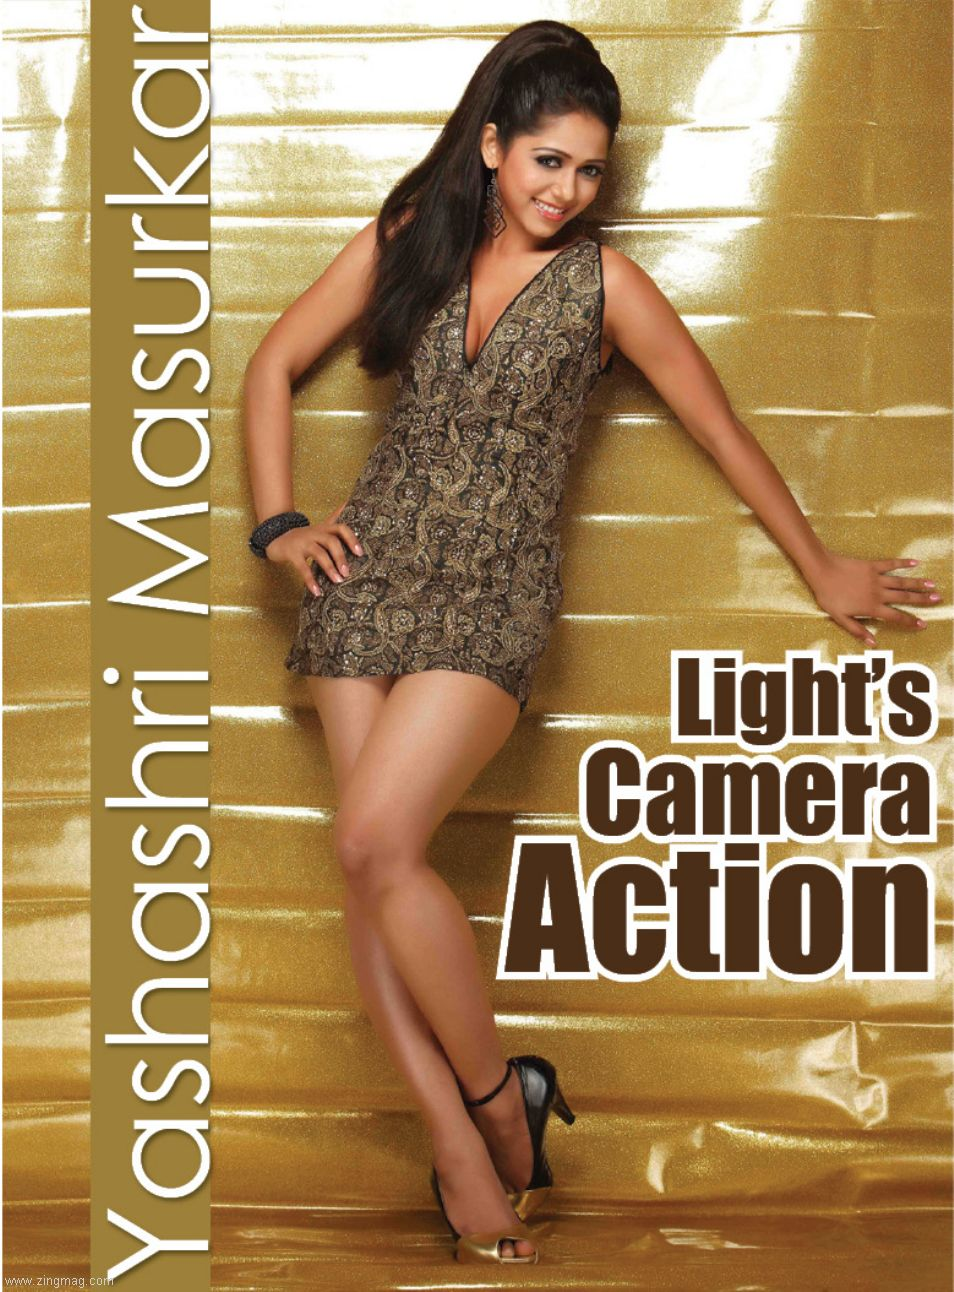 Light's Camera Action - Yashashri Masurkar